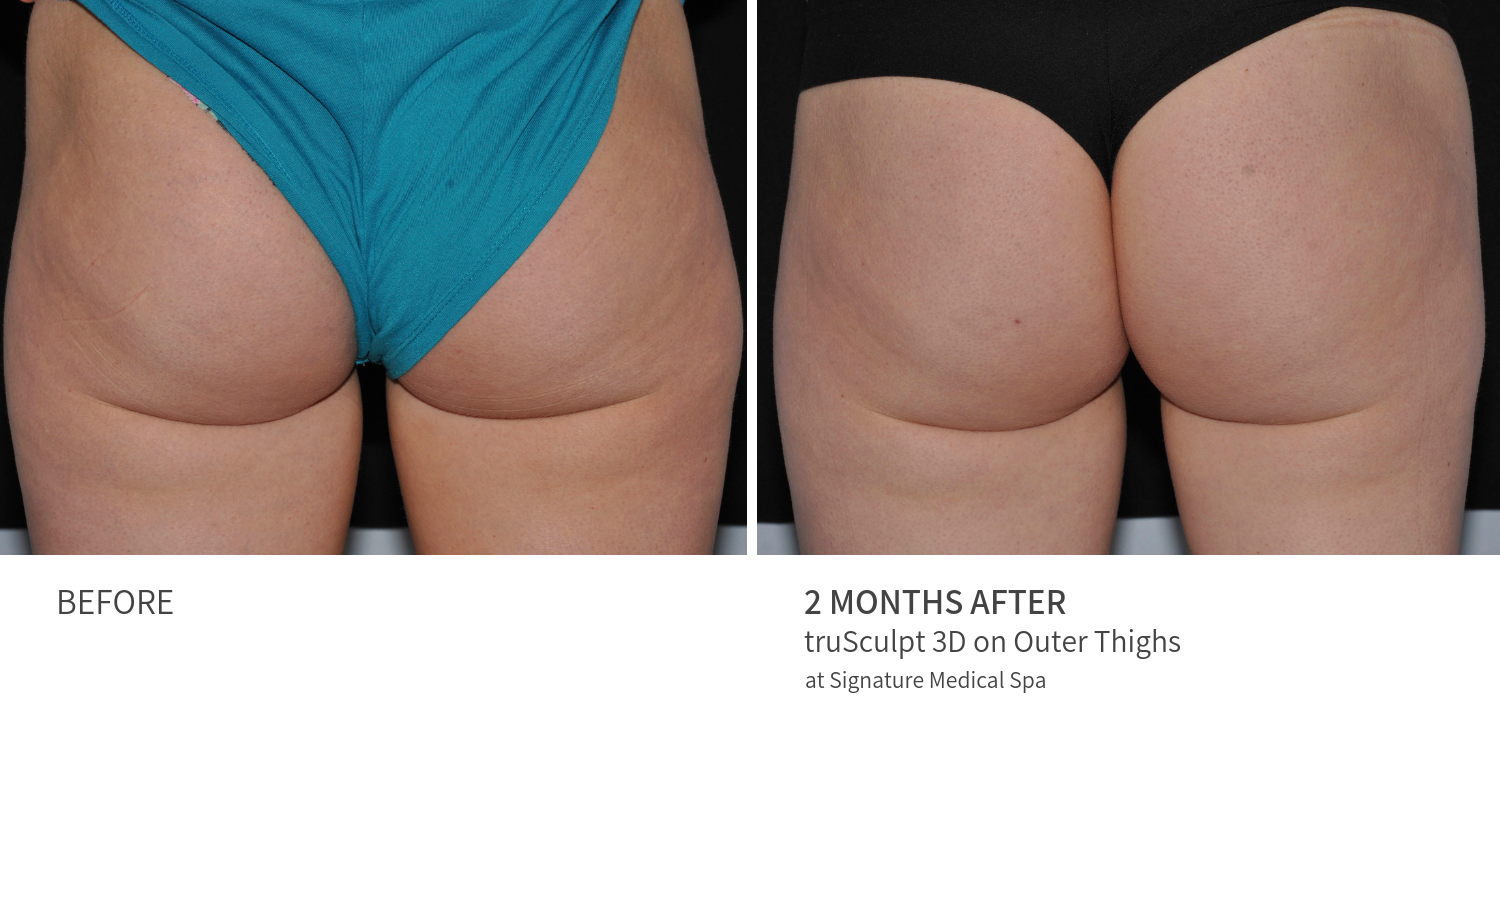 Before and After truSculpt 3D